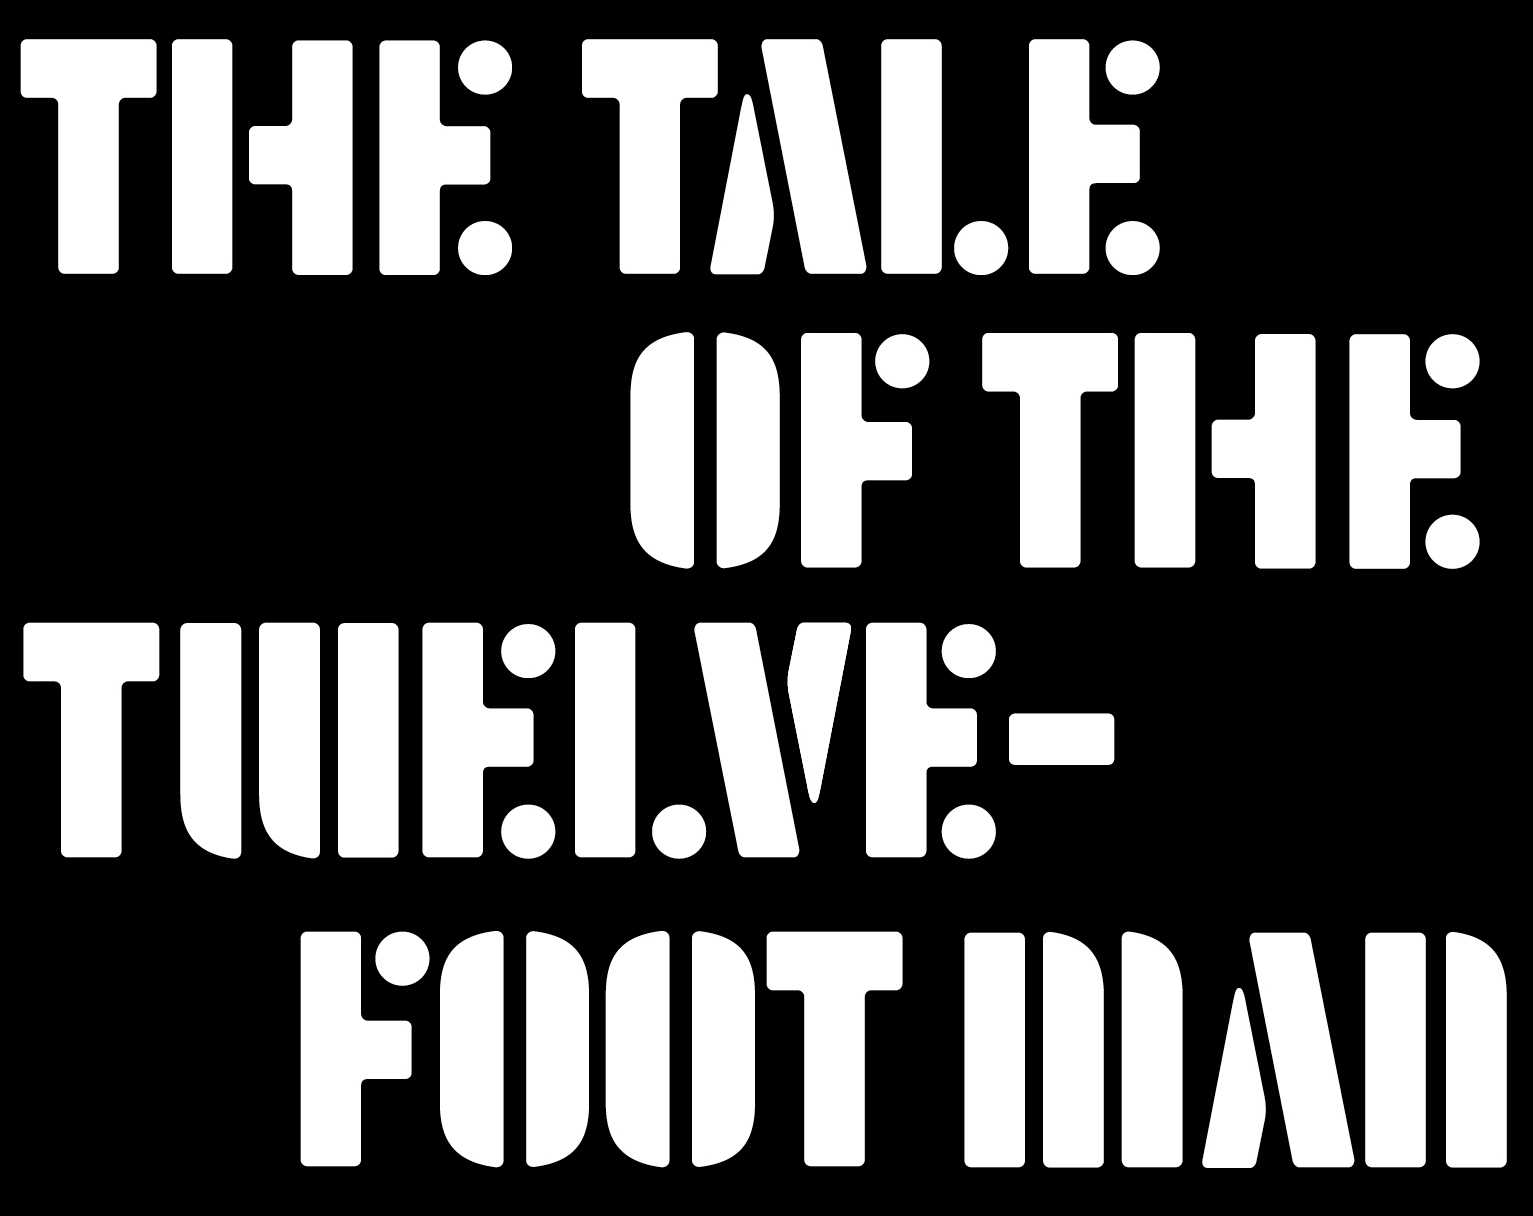 NEW RELEASE: Dylan Jack's THE TALE OF THE TWELVE-FOOT MAN is out June 26th